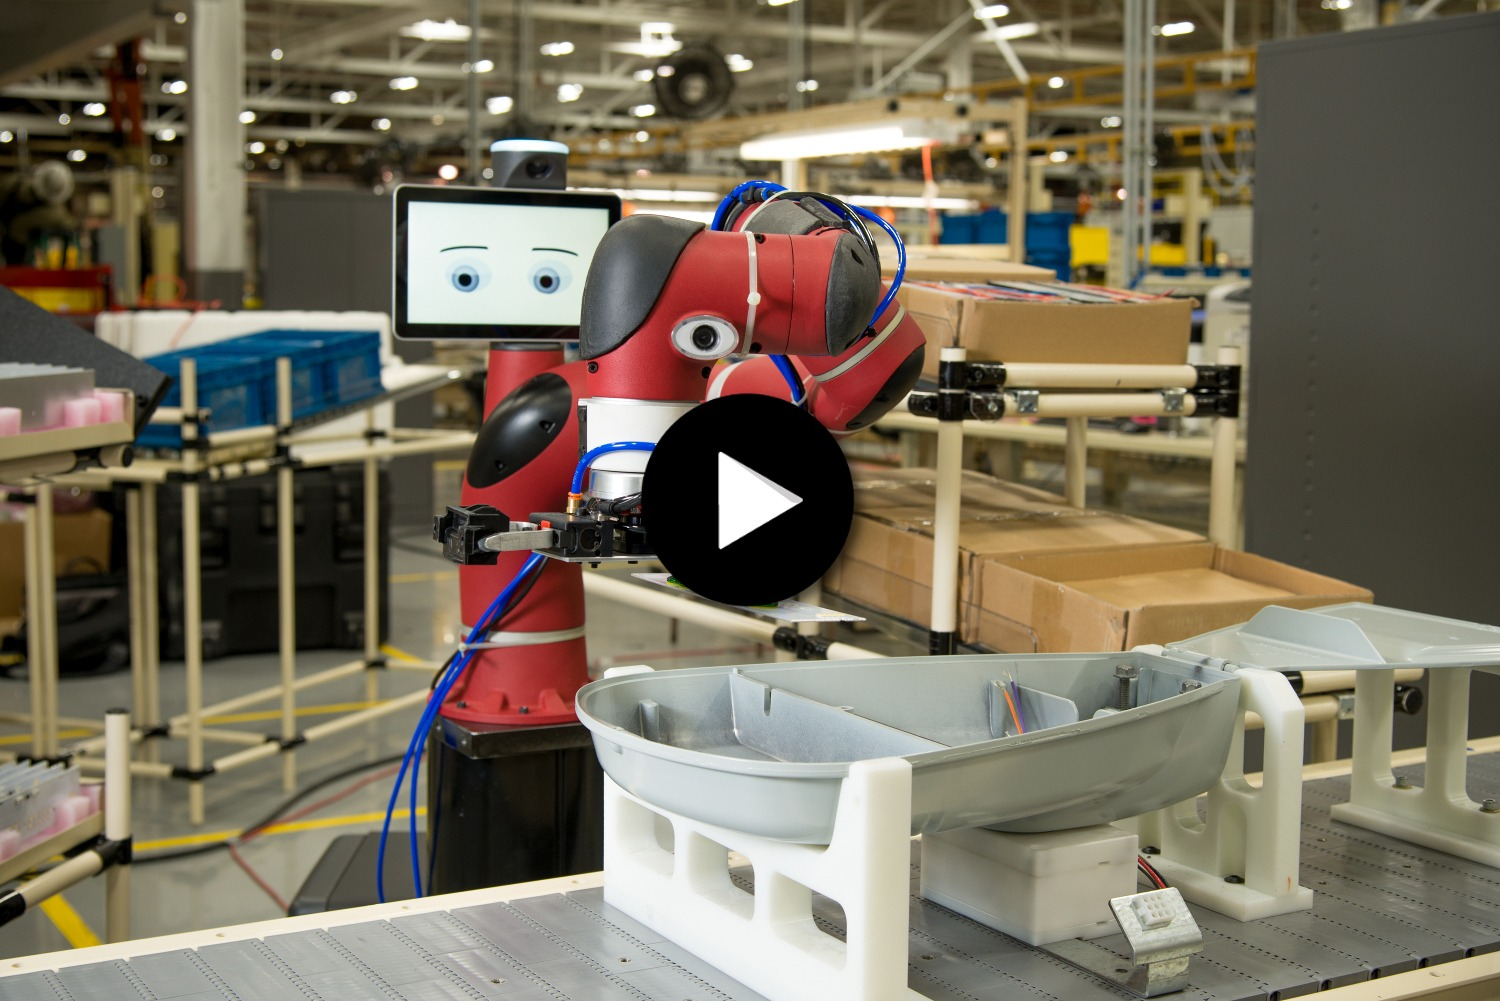 Success Story - Le cobot Sawyer chez General Electric